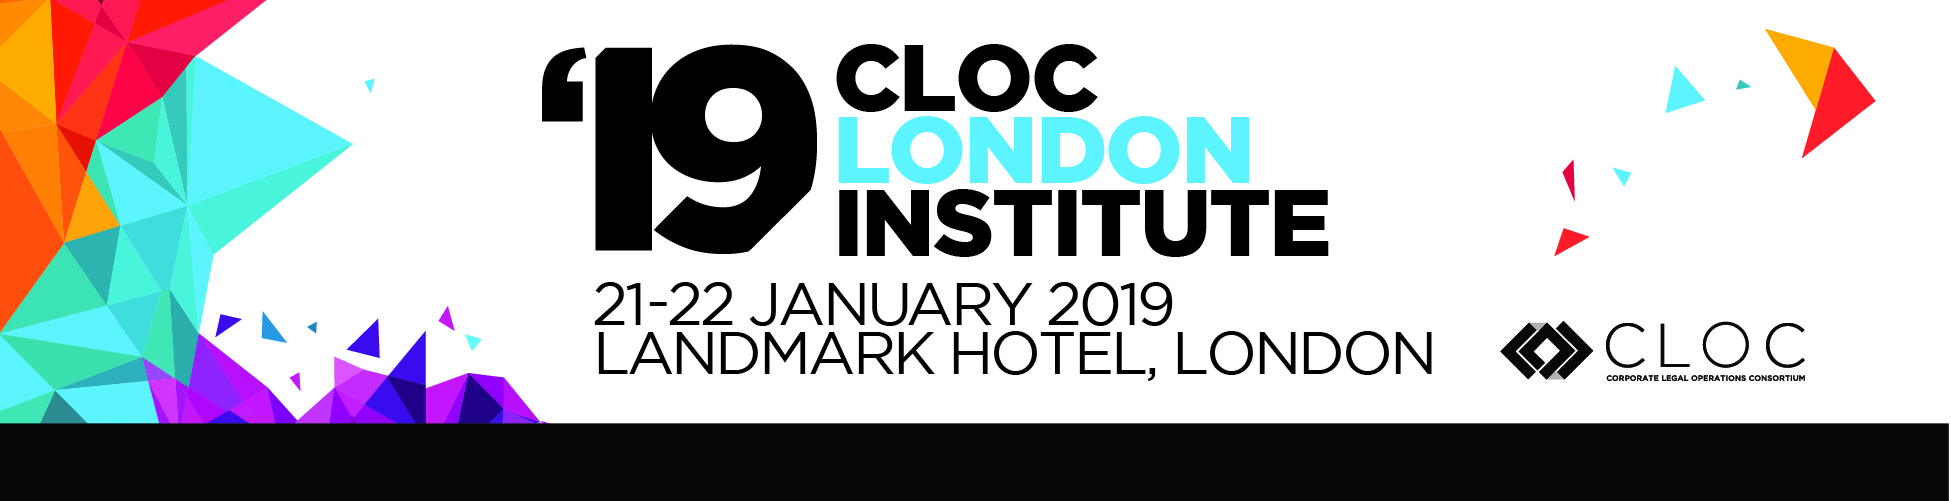 CLOC 2019 London Institute